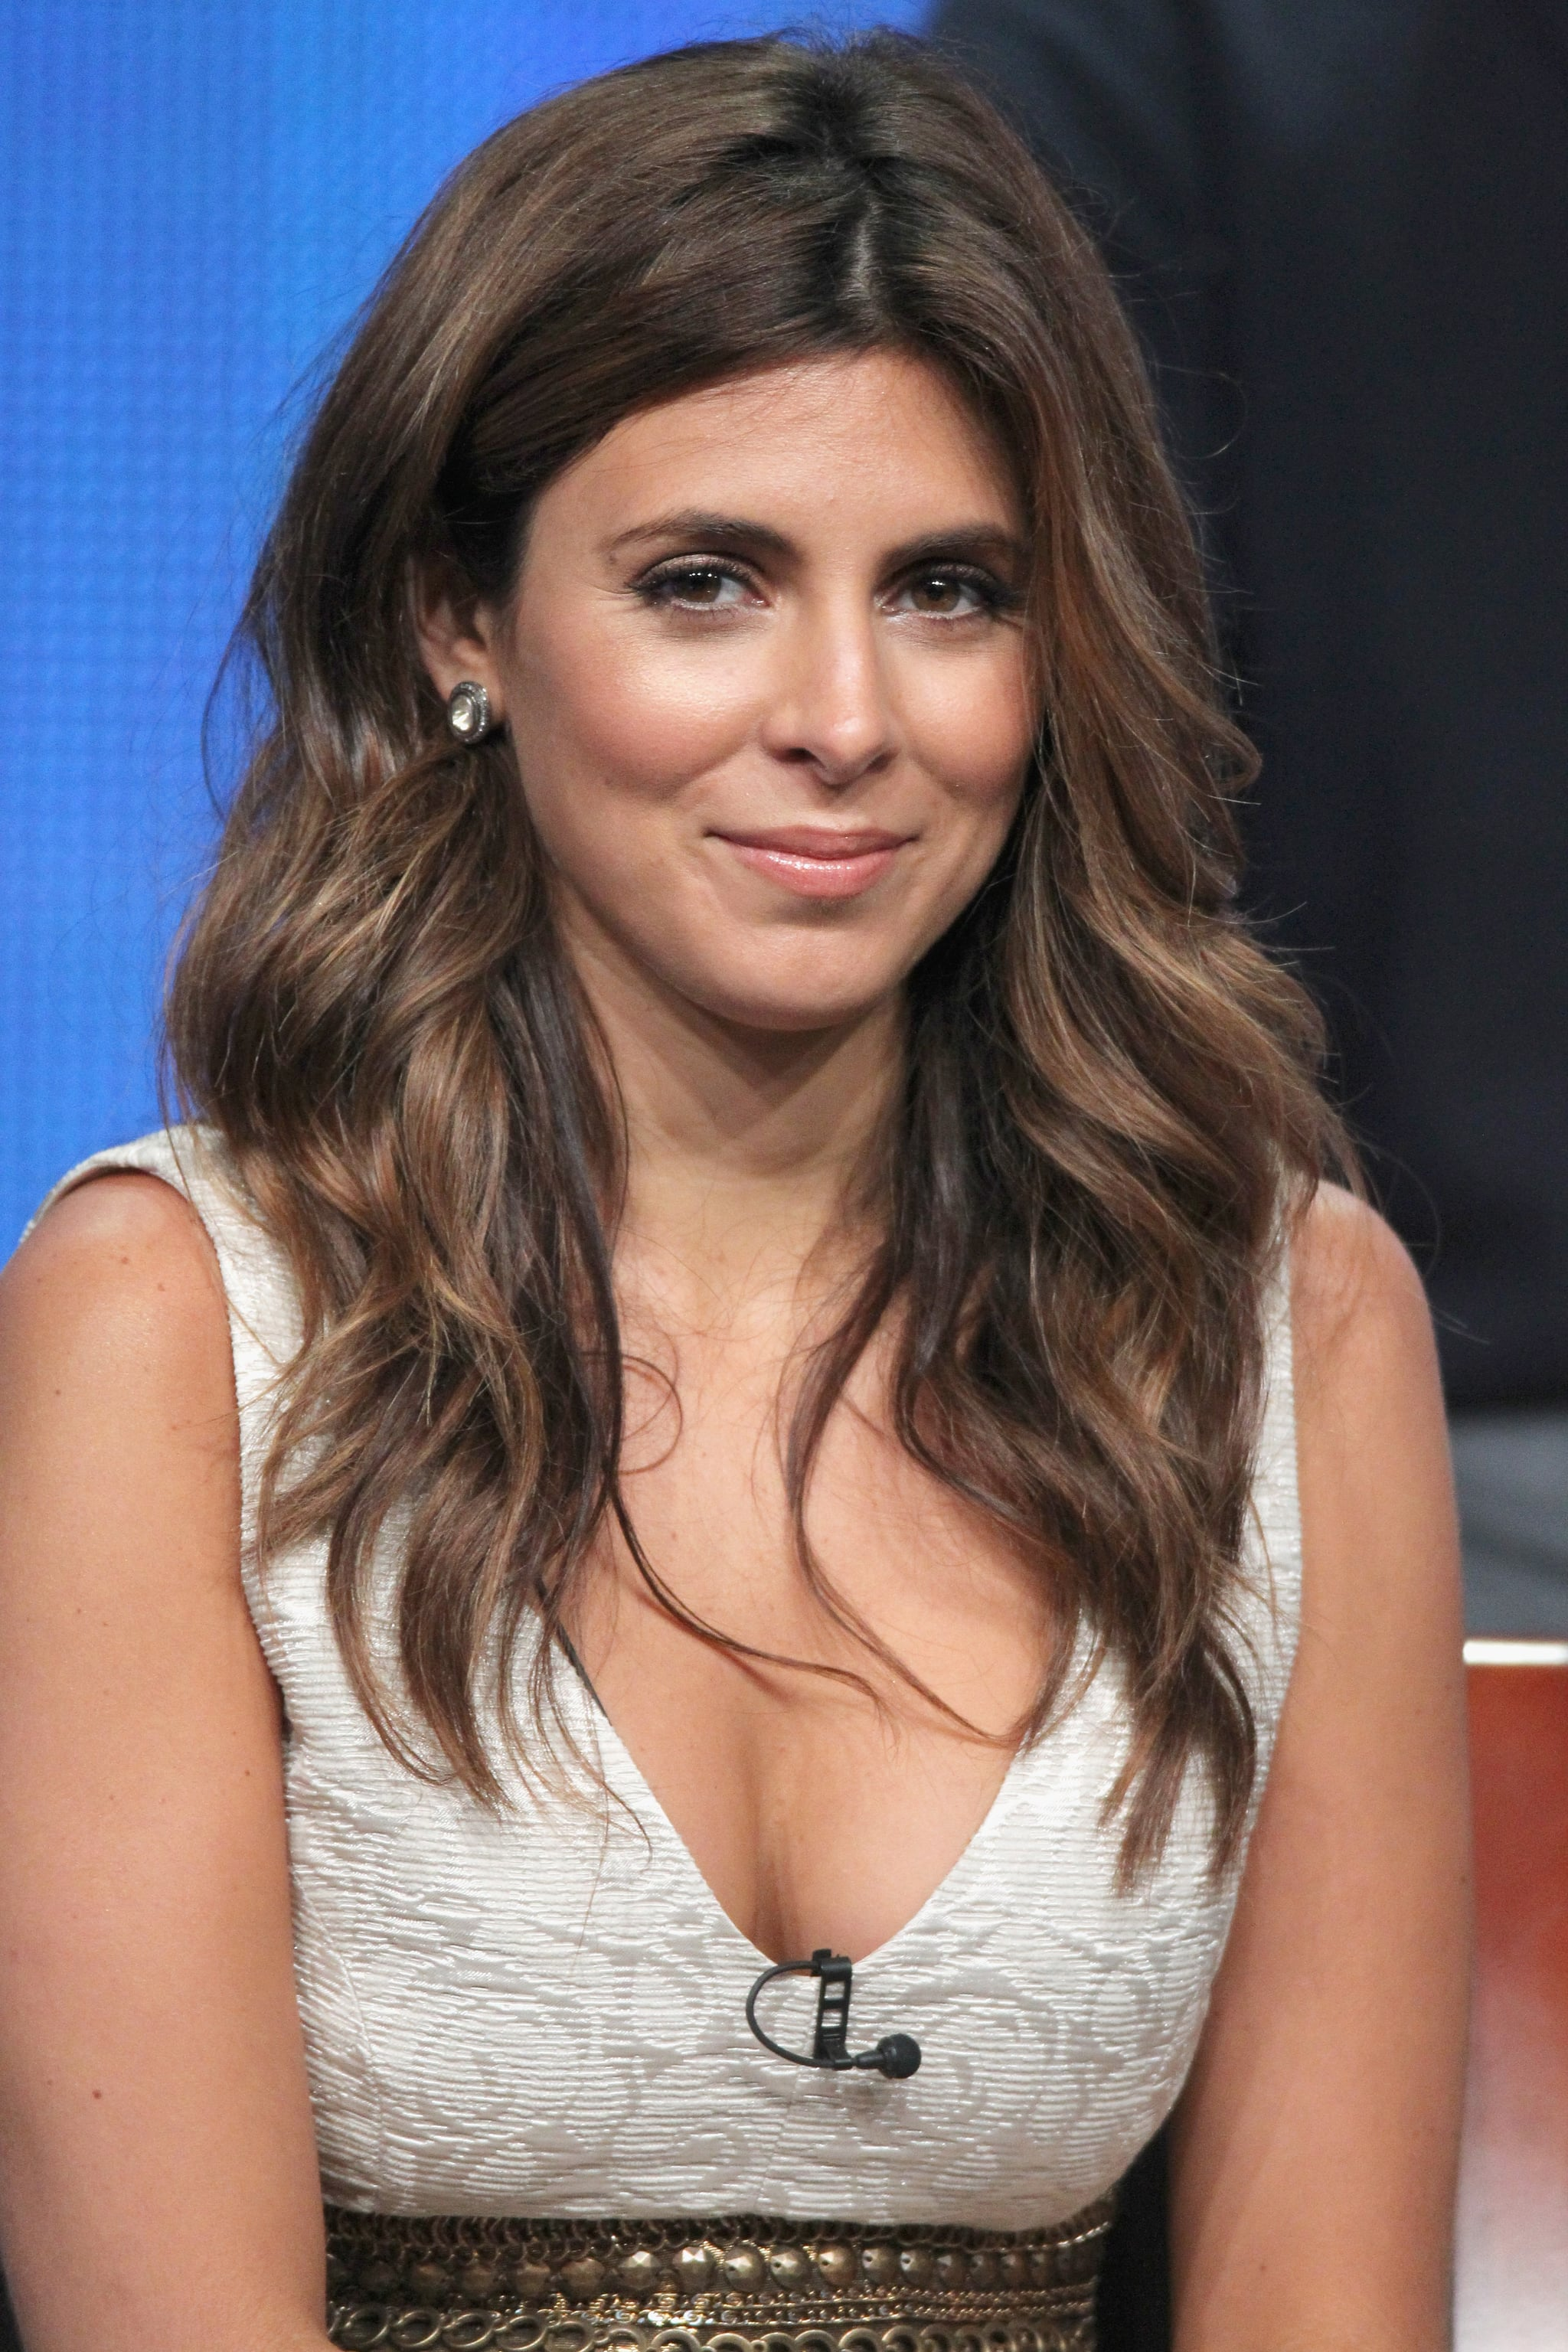 Jamie Lynn Sigler (The Sopranos) plays Zach Cregger's onscreen wife in Guys With Kids.